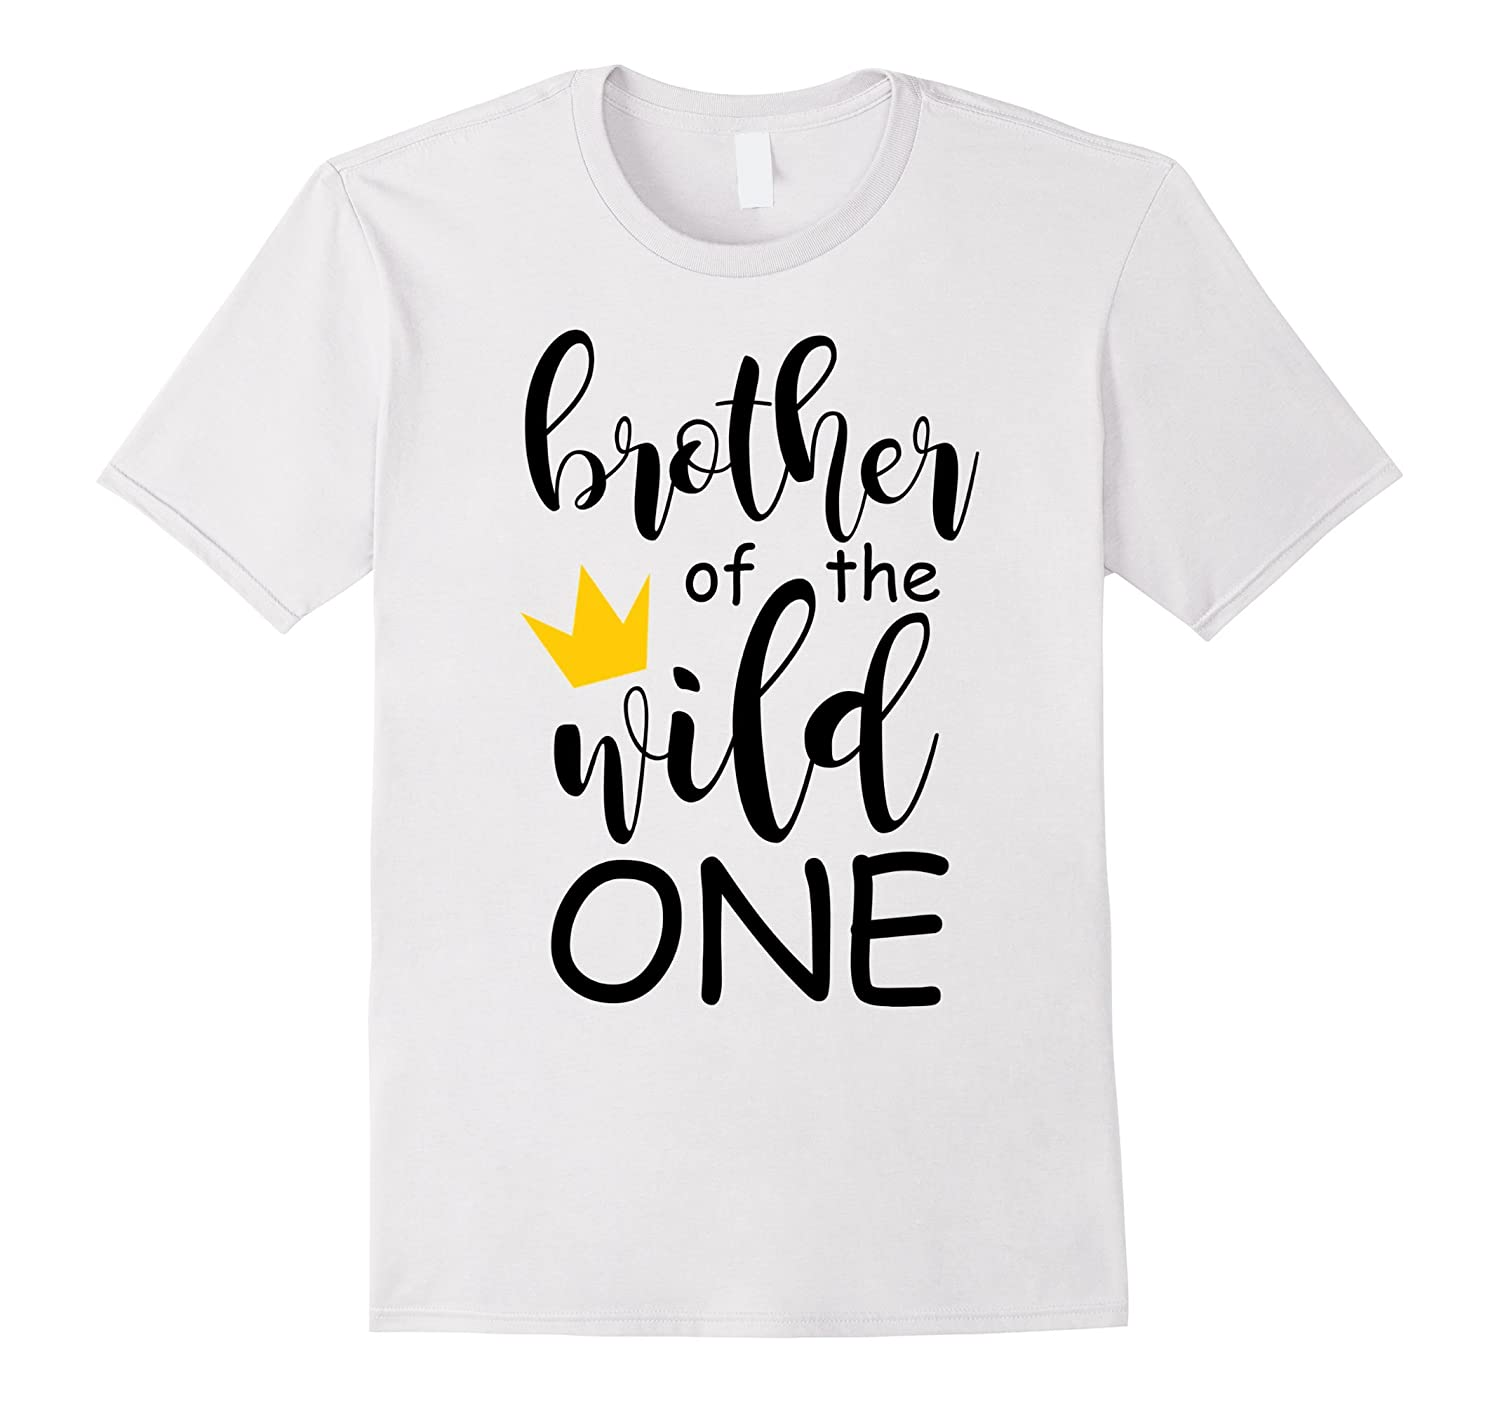 091d6b44 Cute Brother Of The Wild One 1st Birthday Family Matching et-BN ...